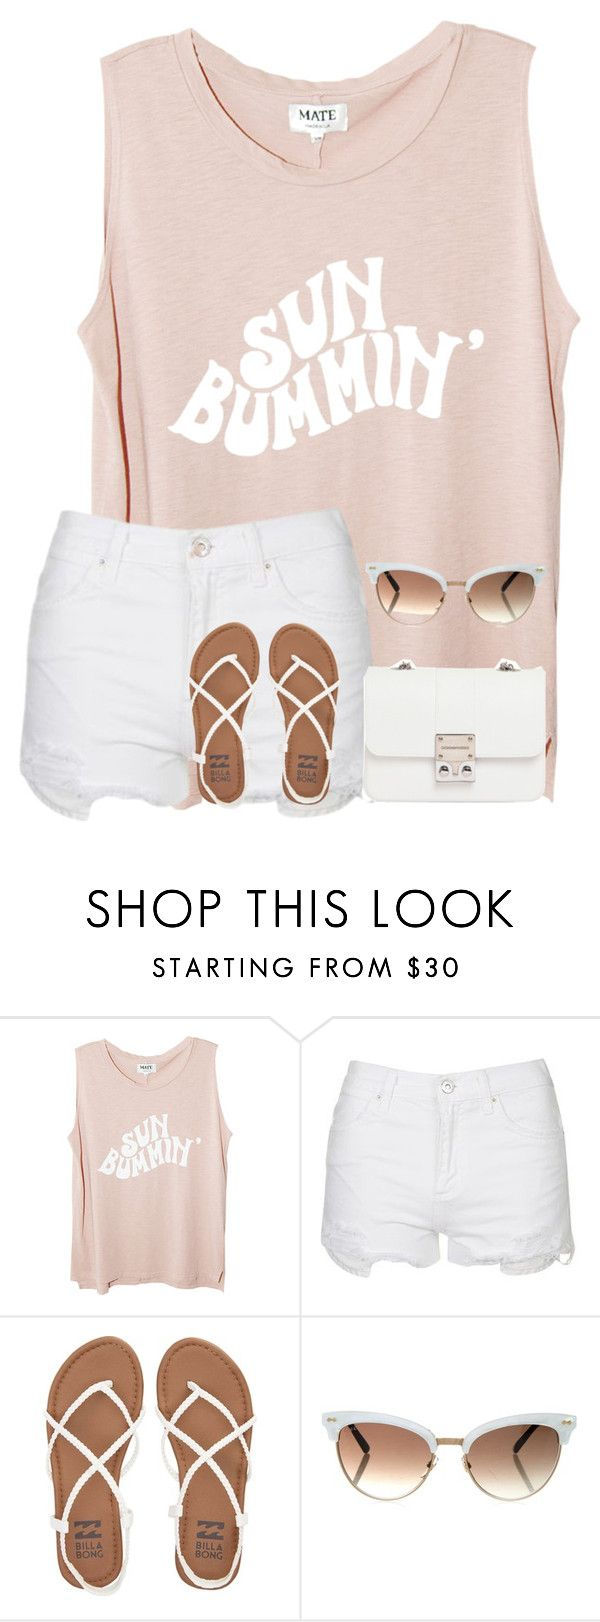 """Sans titre #55"" by josefina-deveci ❤ liked on Polyvore featuring beauty, Topshop, Billabong, Gucci and Design Inverso"